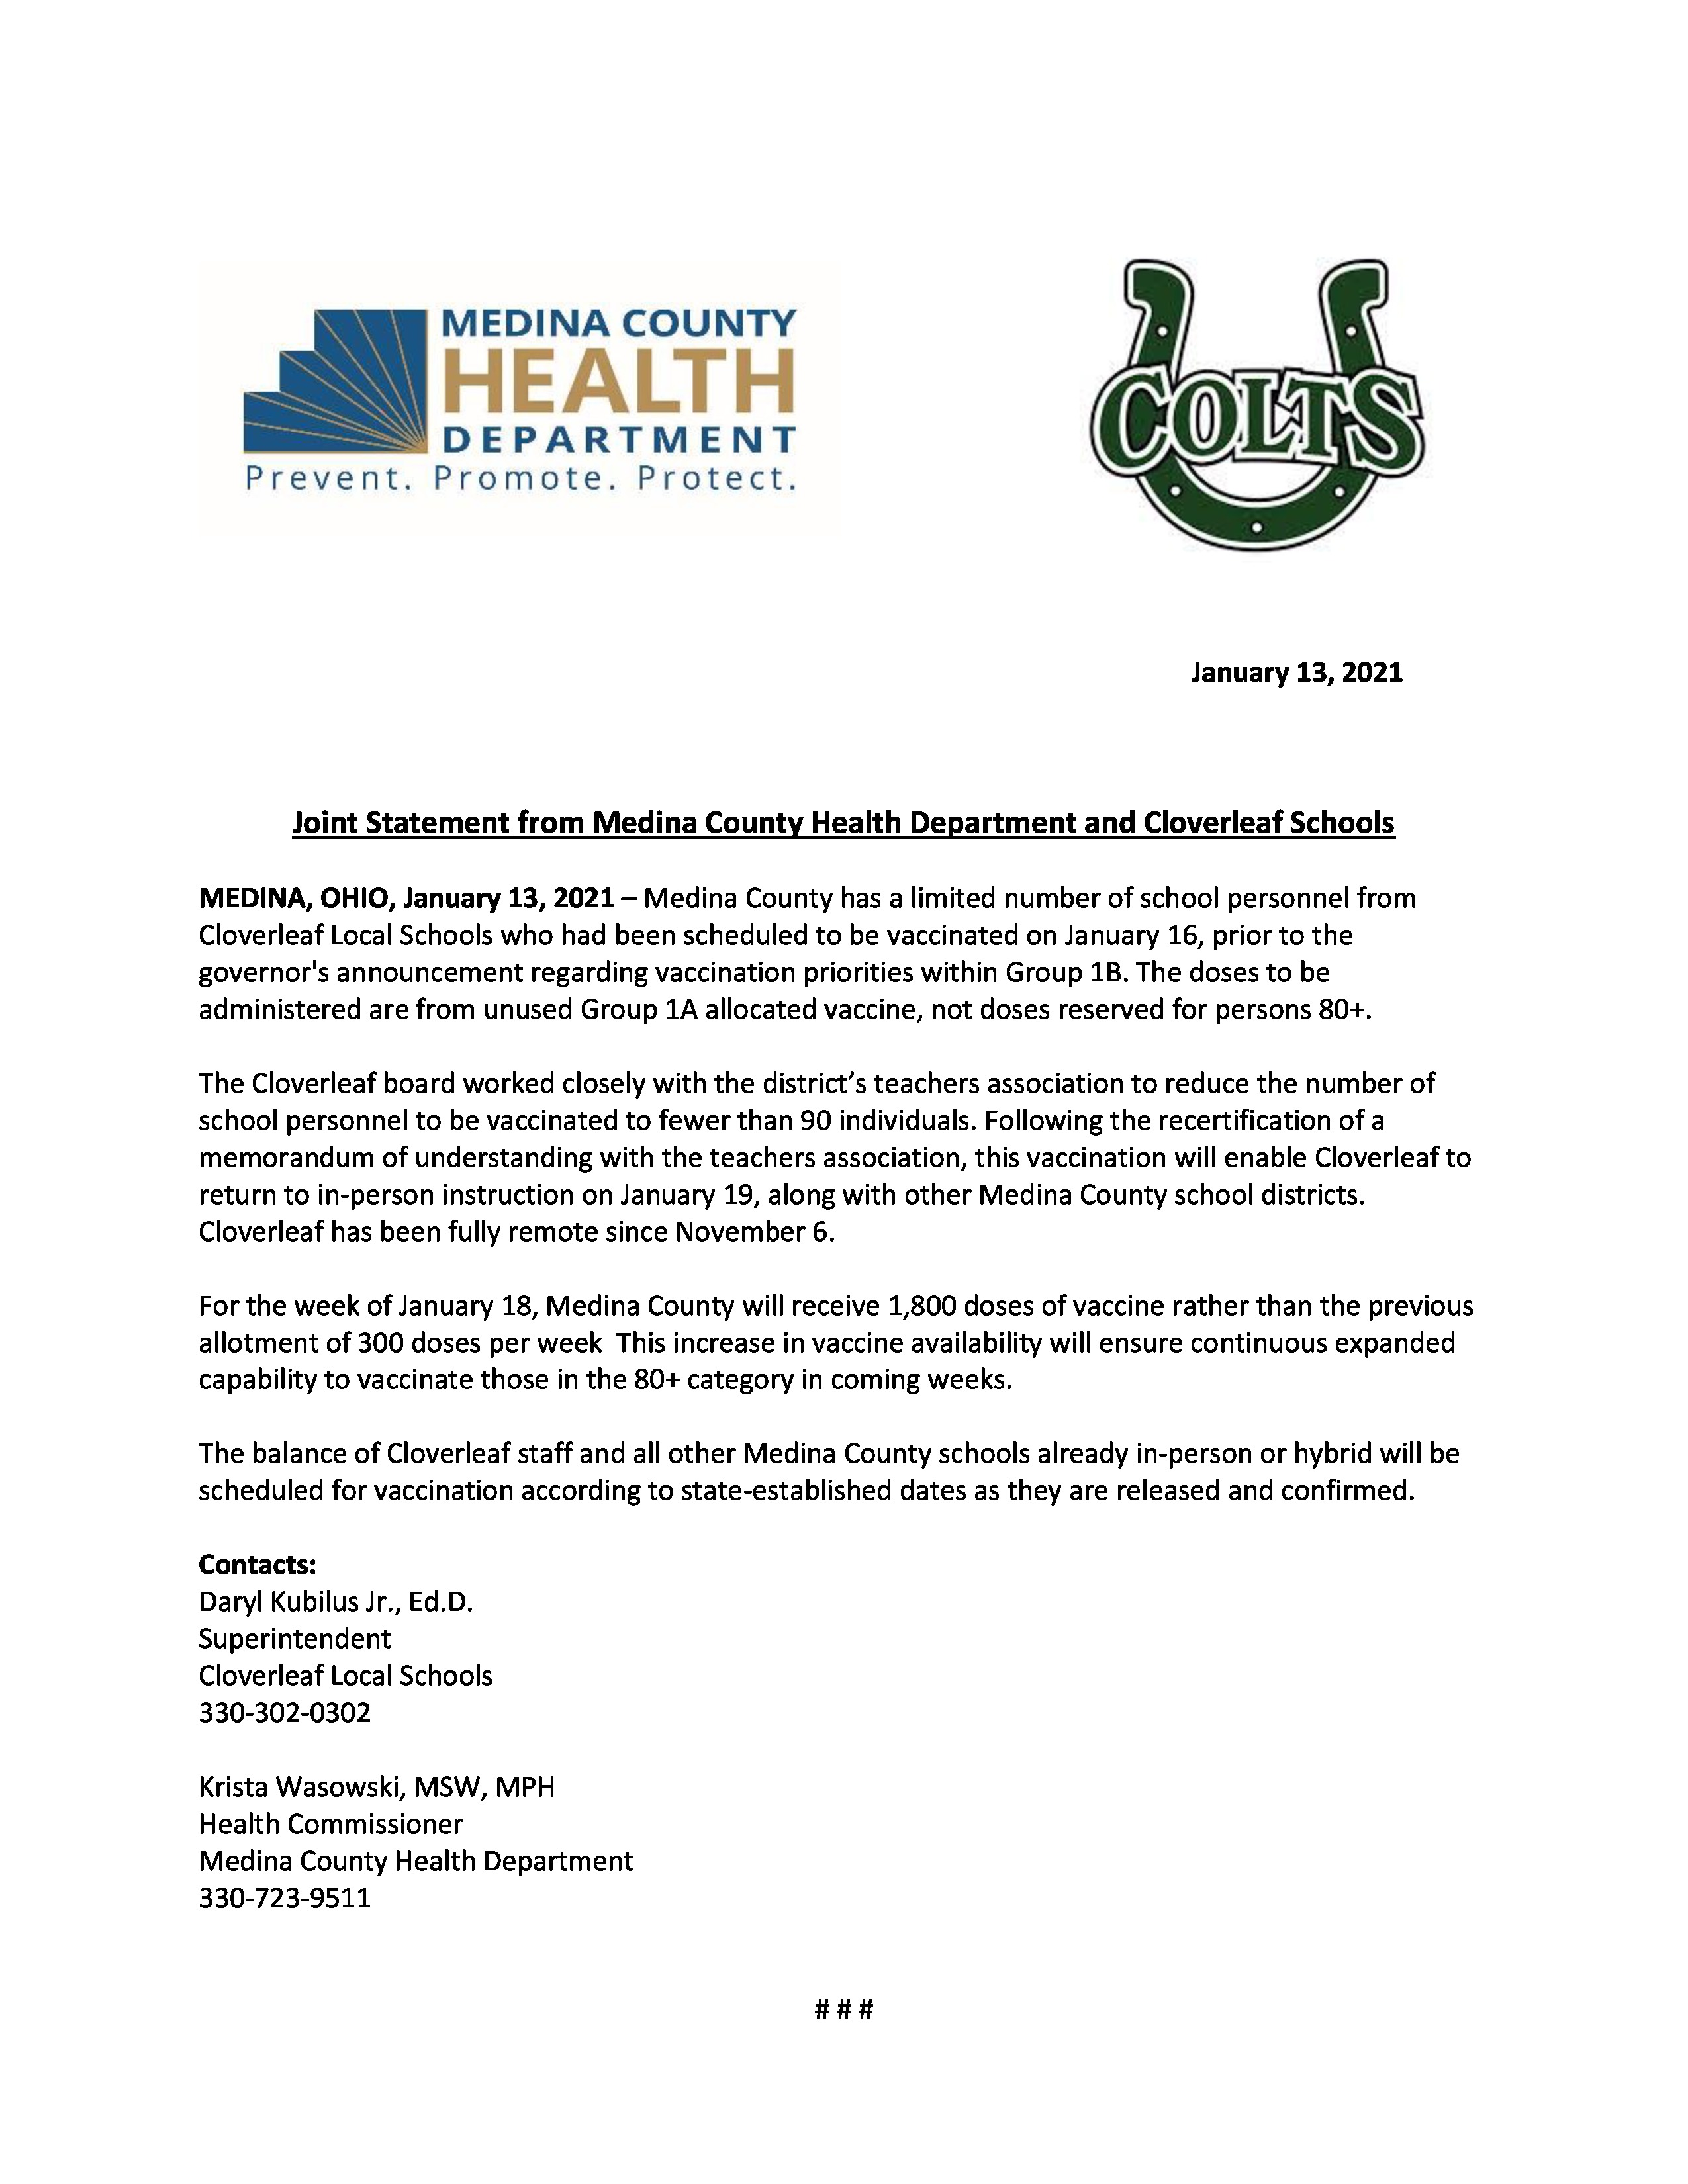 Joint news release from Medina County Health Department and Cloverleaf Local Schools